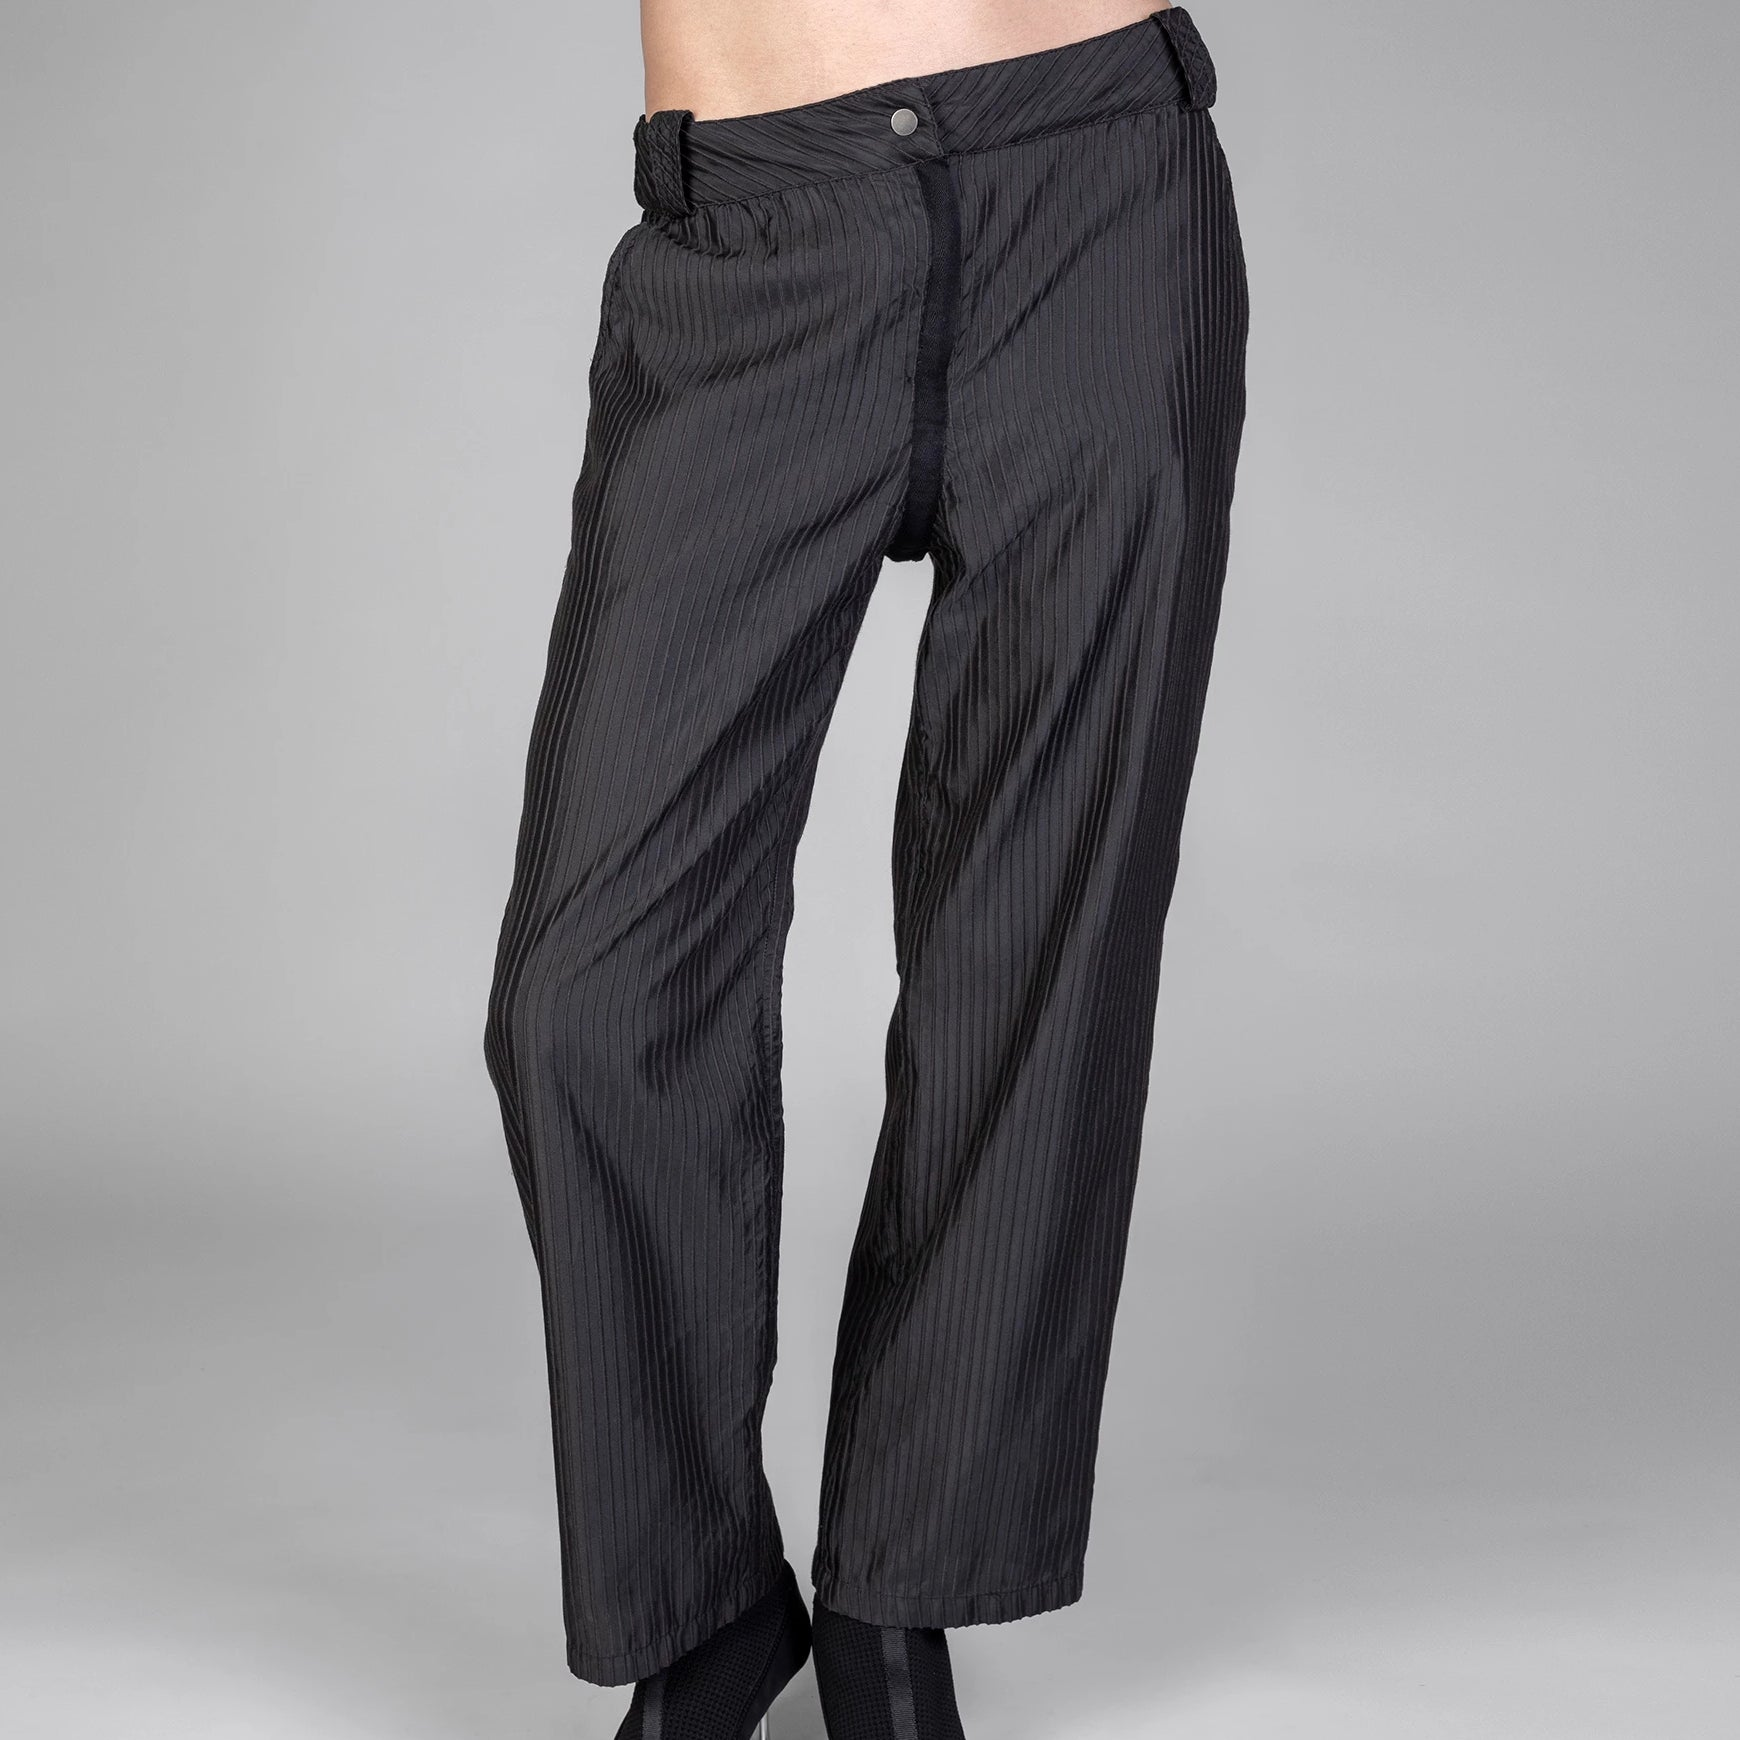 3D PINSTRIPE TROUSERS